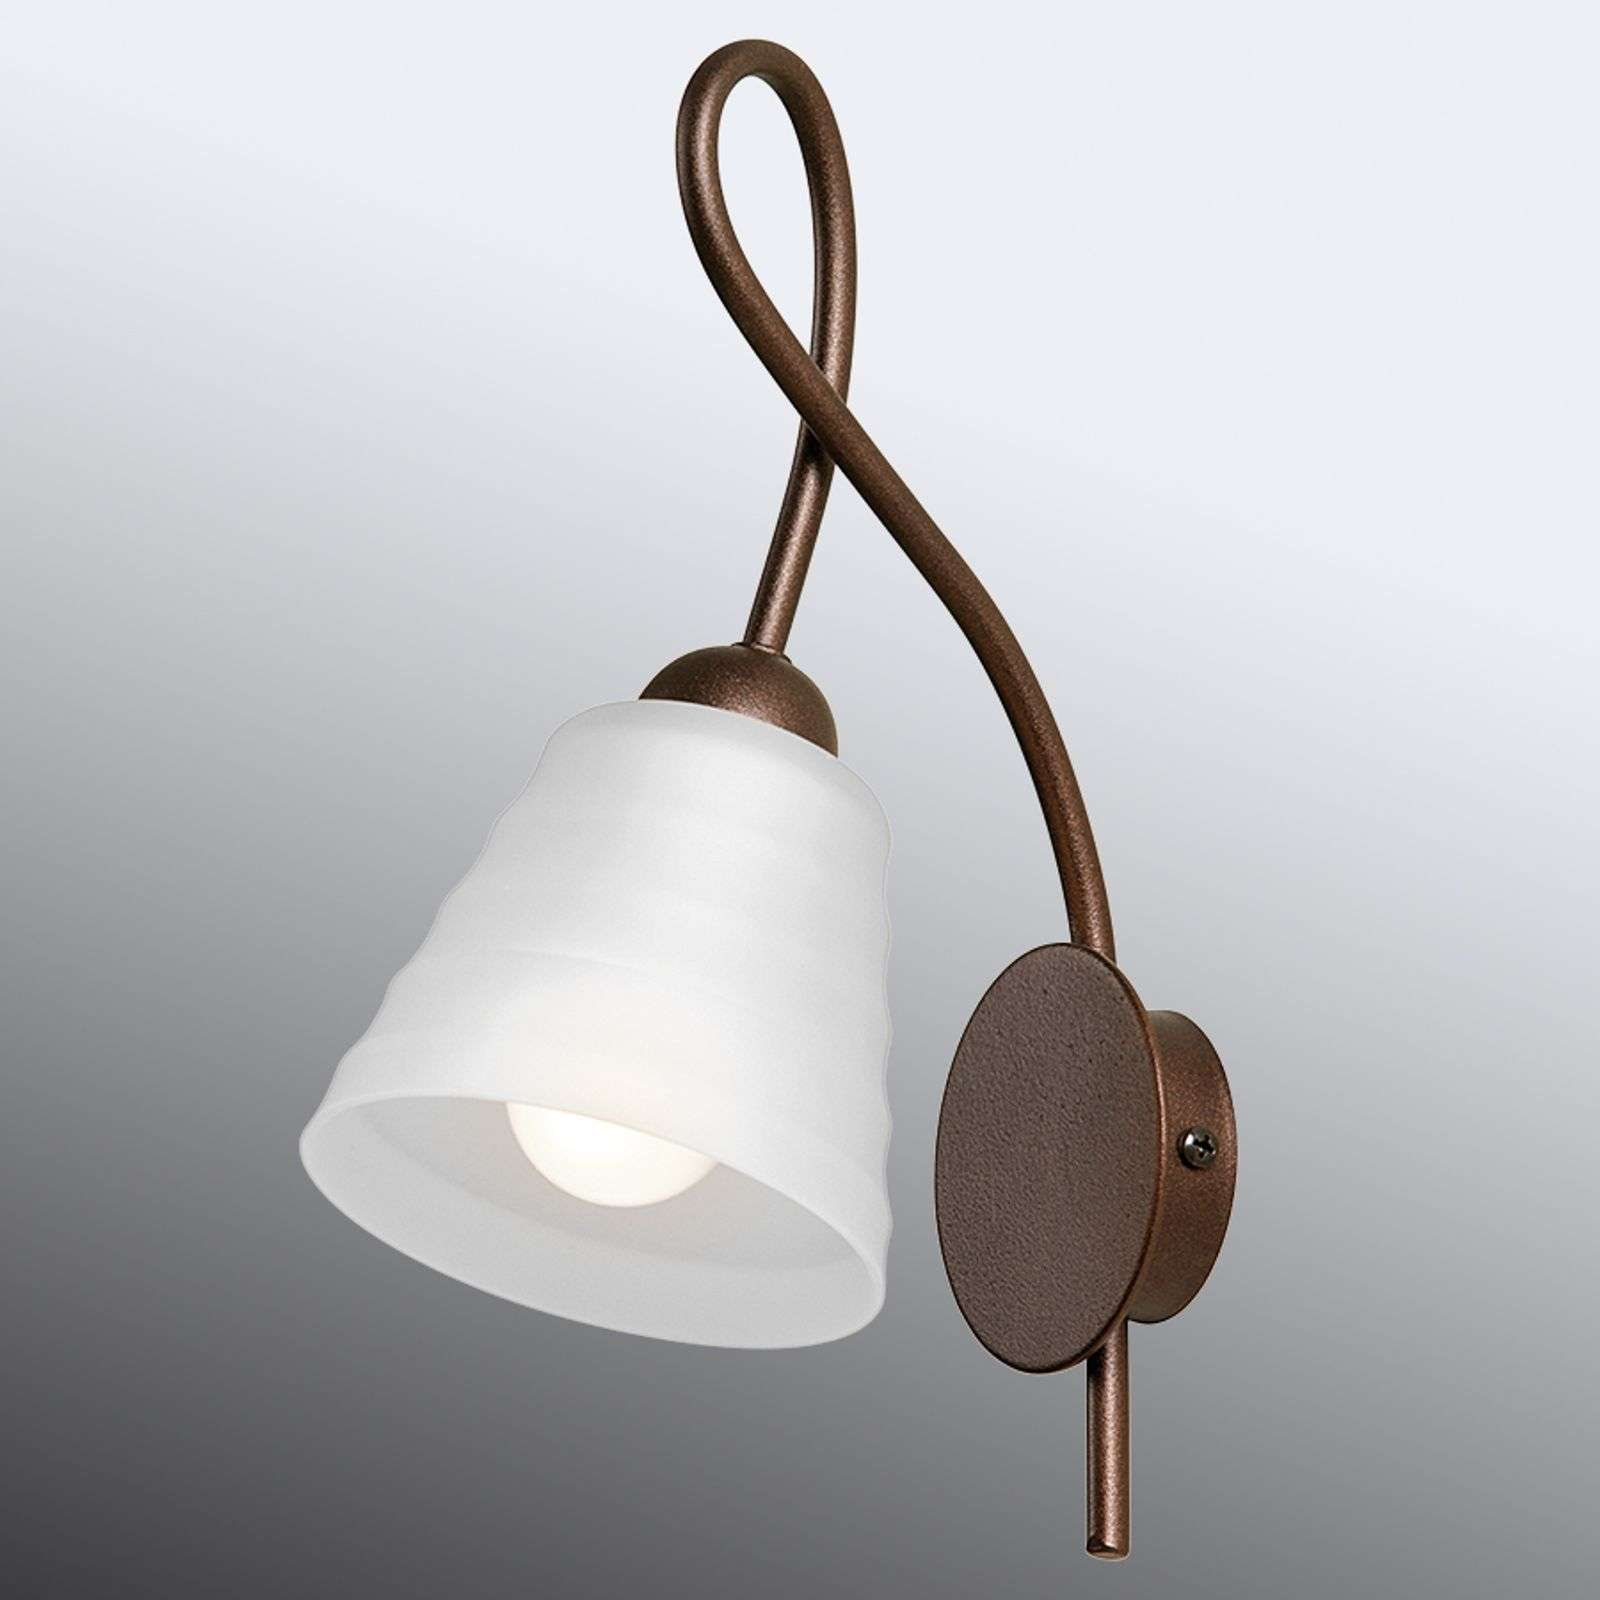 Belle applique HAMBURGER 1 lampe blanche